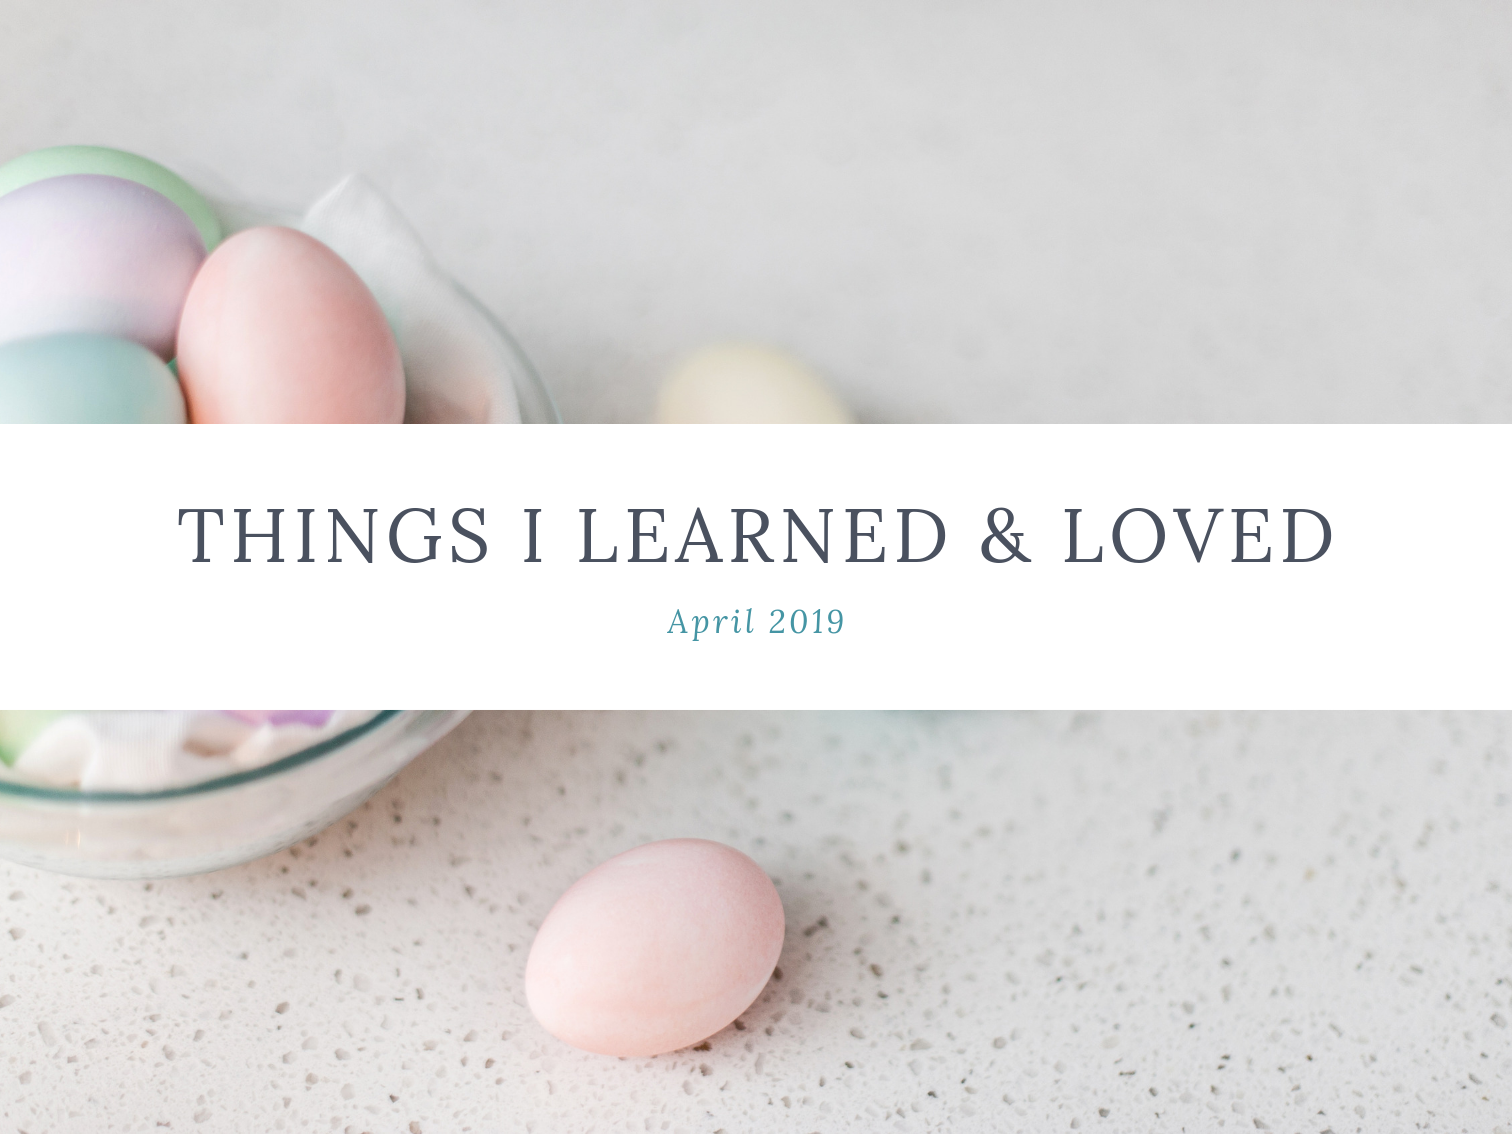 laura-rose-creative-things-I-learned-loved-april